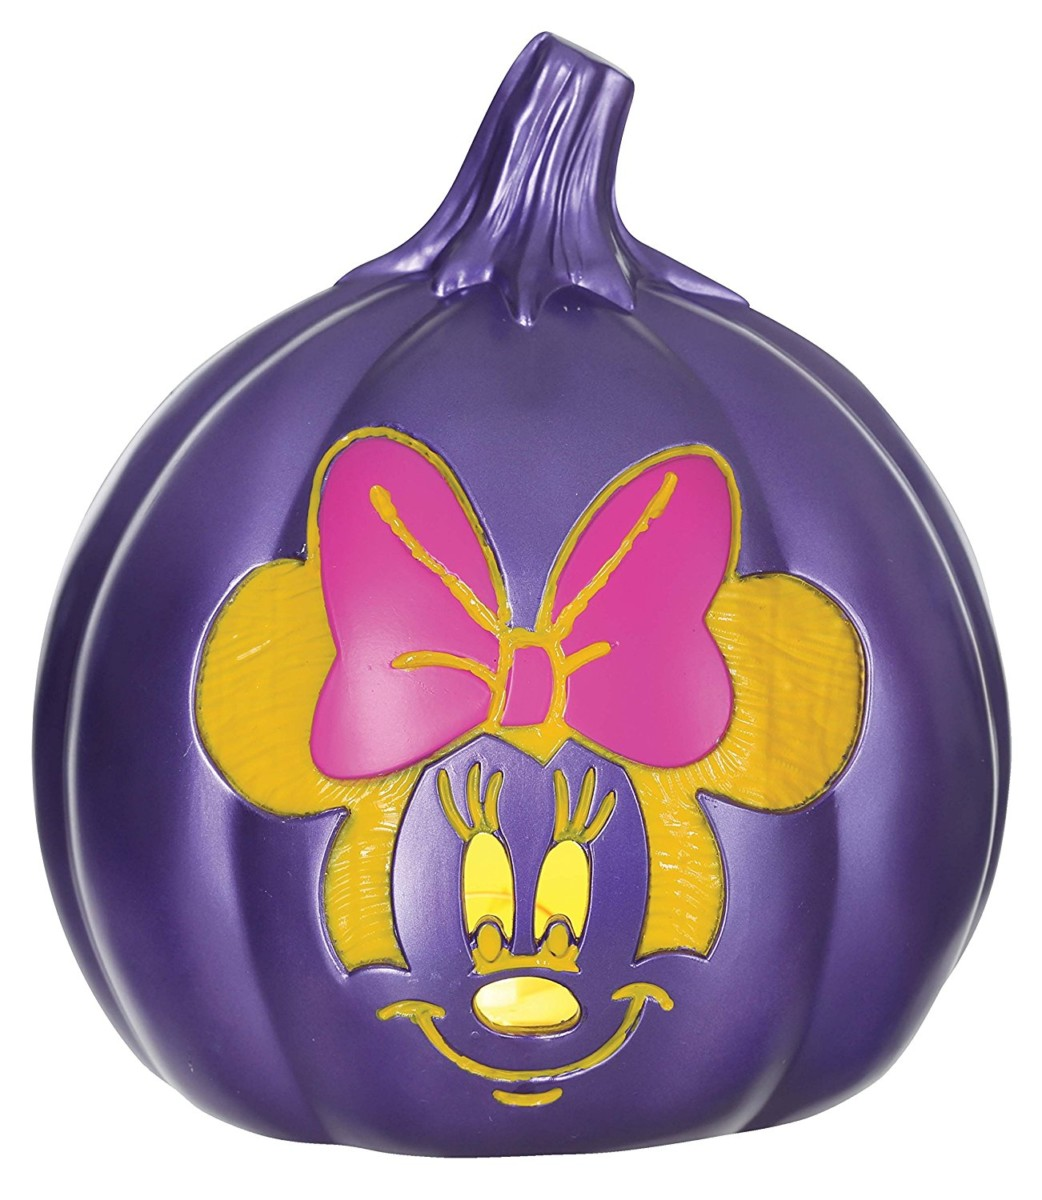 Disney Halloween Decorations For Your Home 3